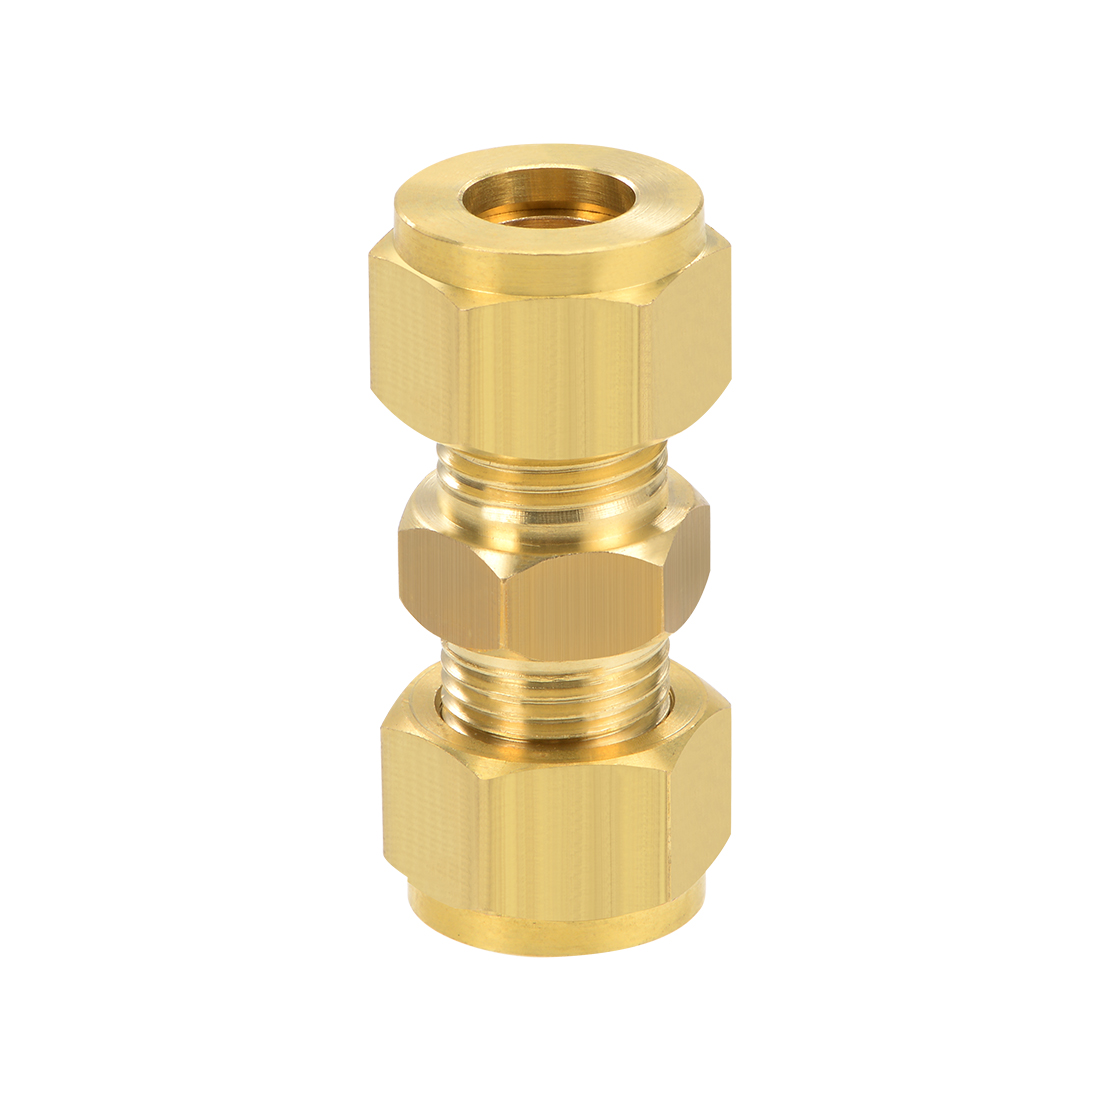 Brass Compression Tube Fitting 10mm OD Straight Pipe Adapter Irrigation